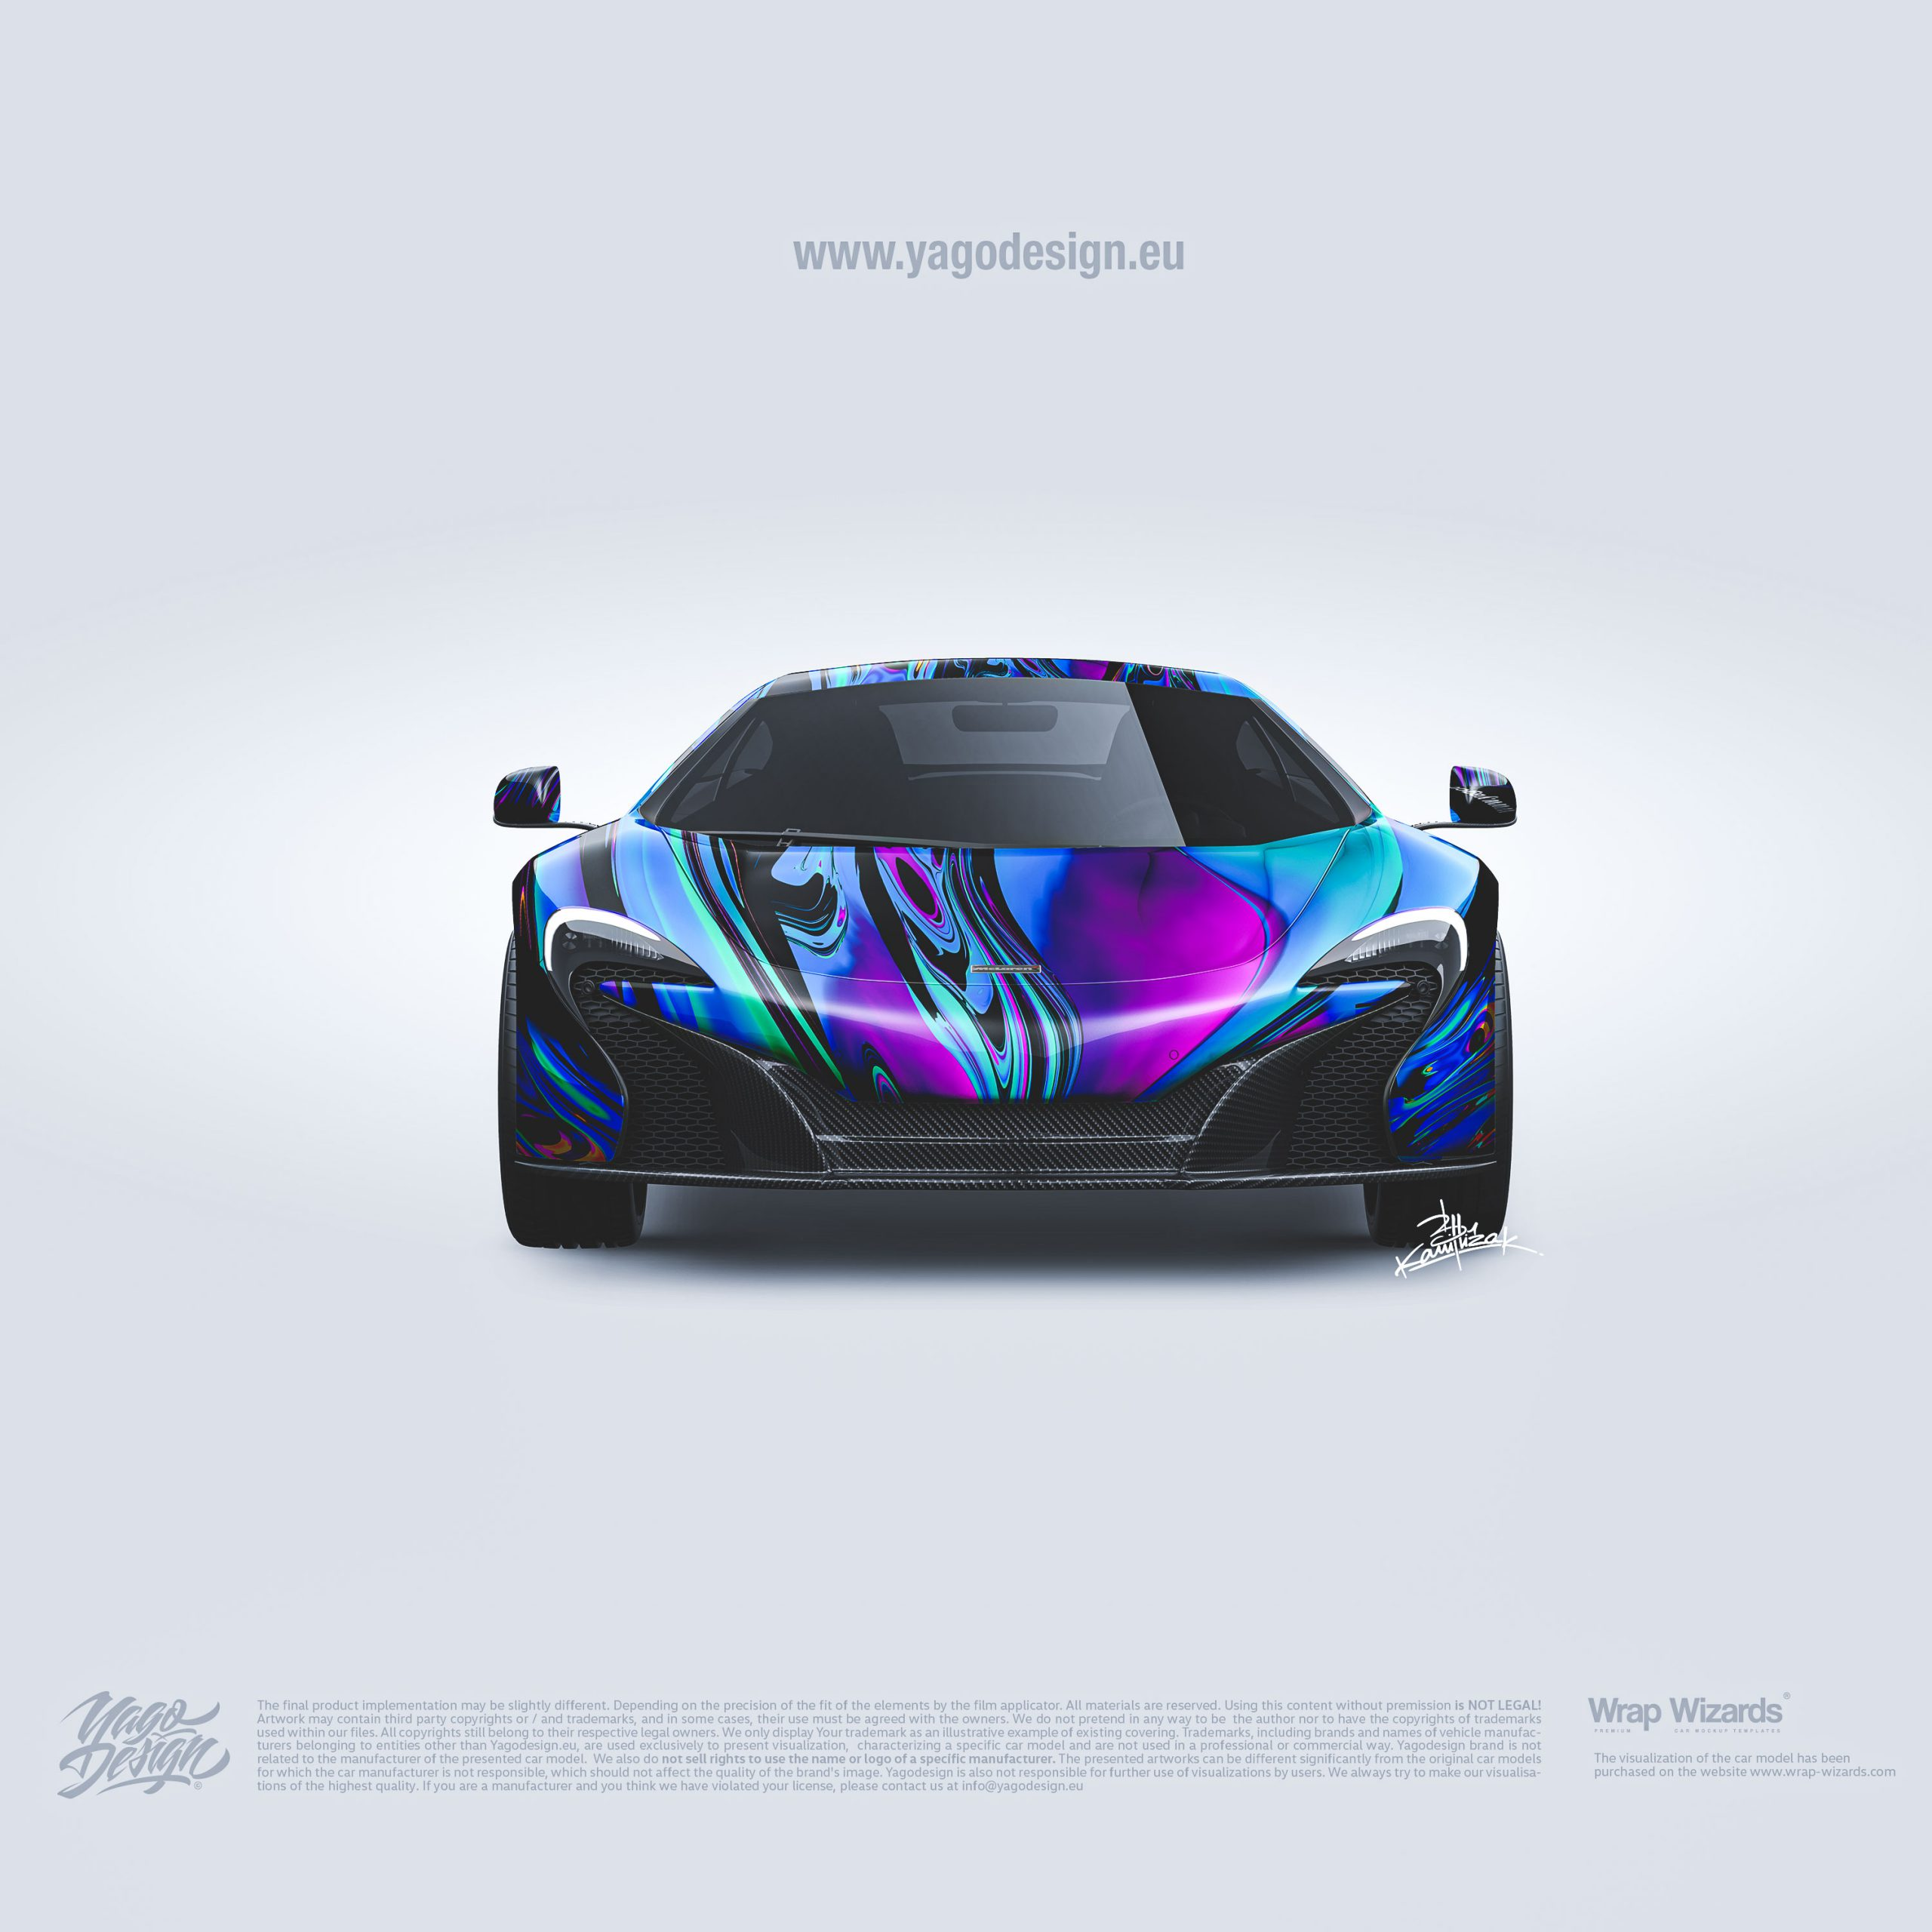 McLaren-650S-Coupe-By-Yagodesign-Automotive-Design-Studio-front-View-scaled